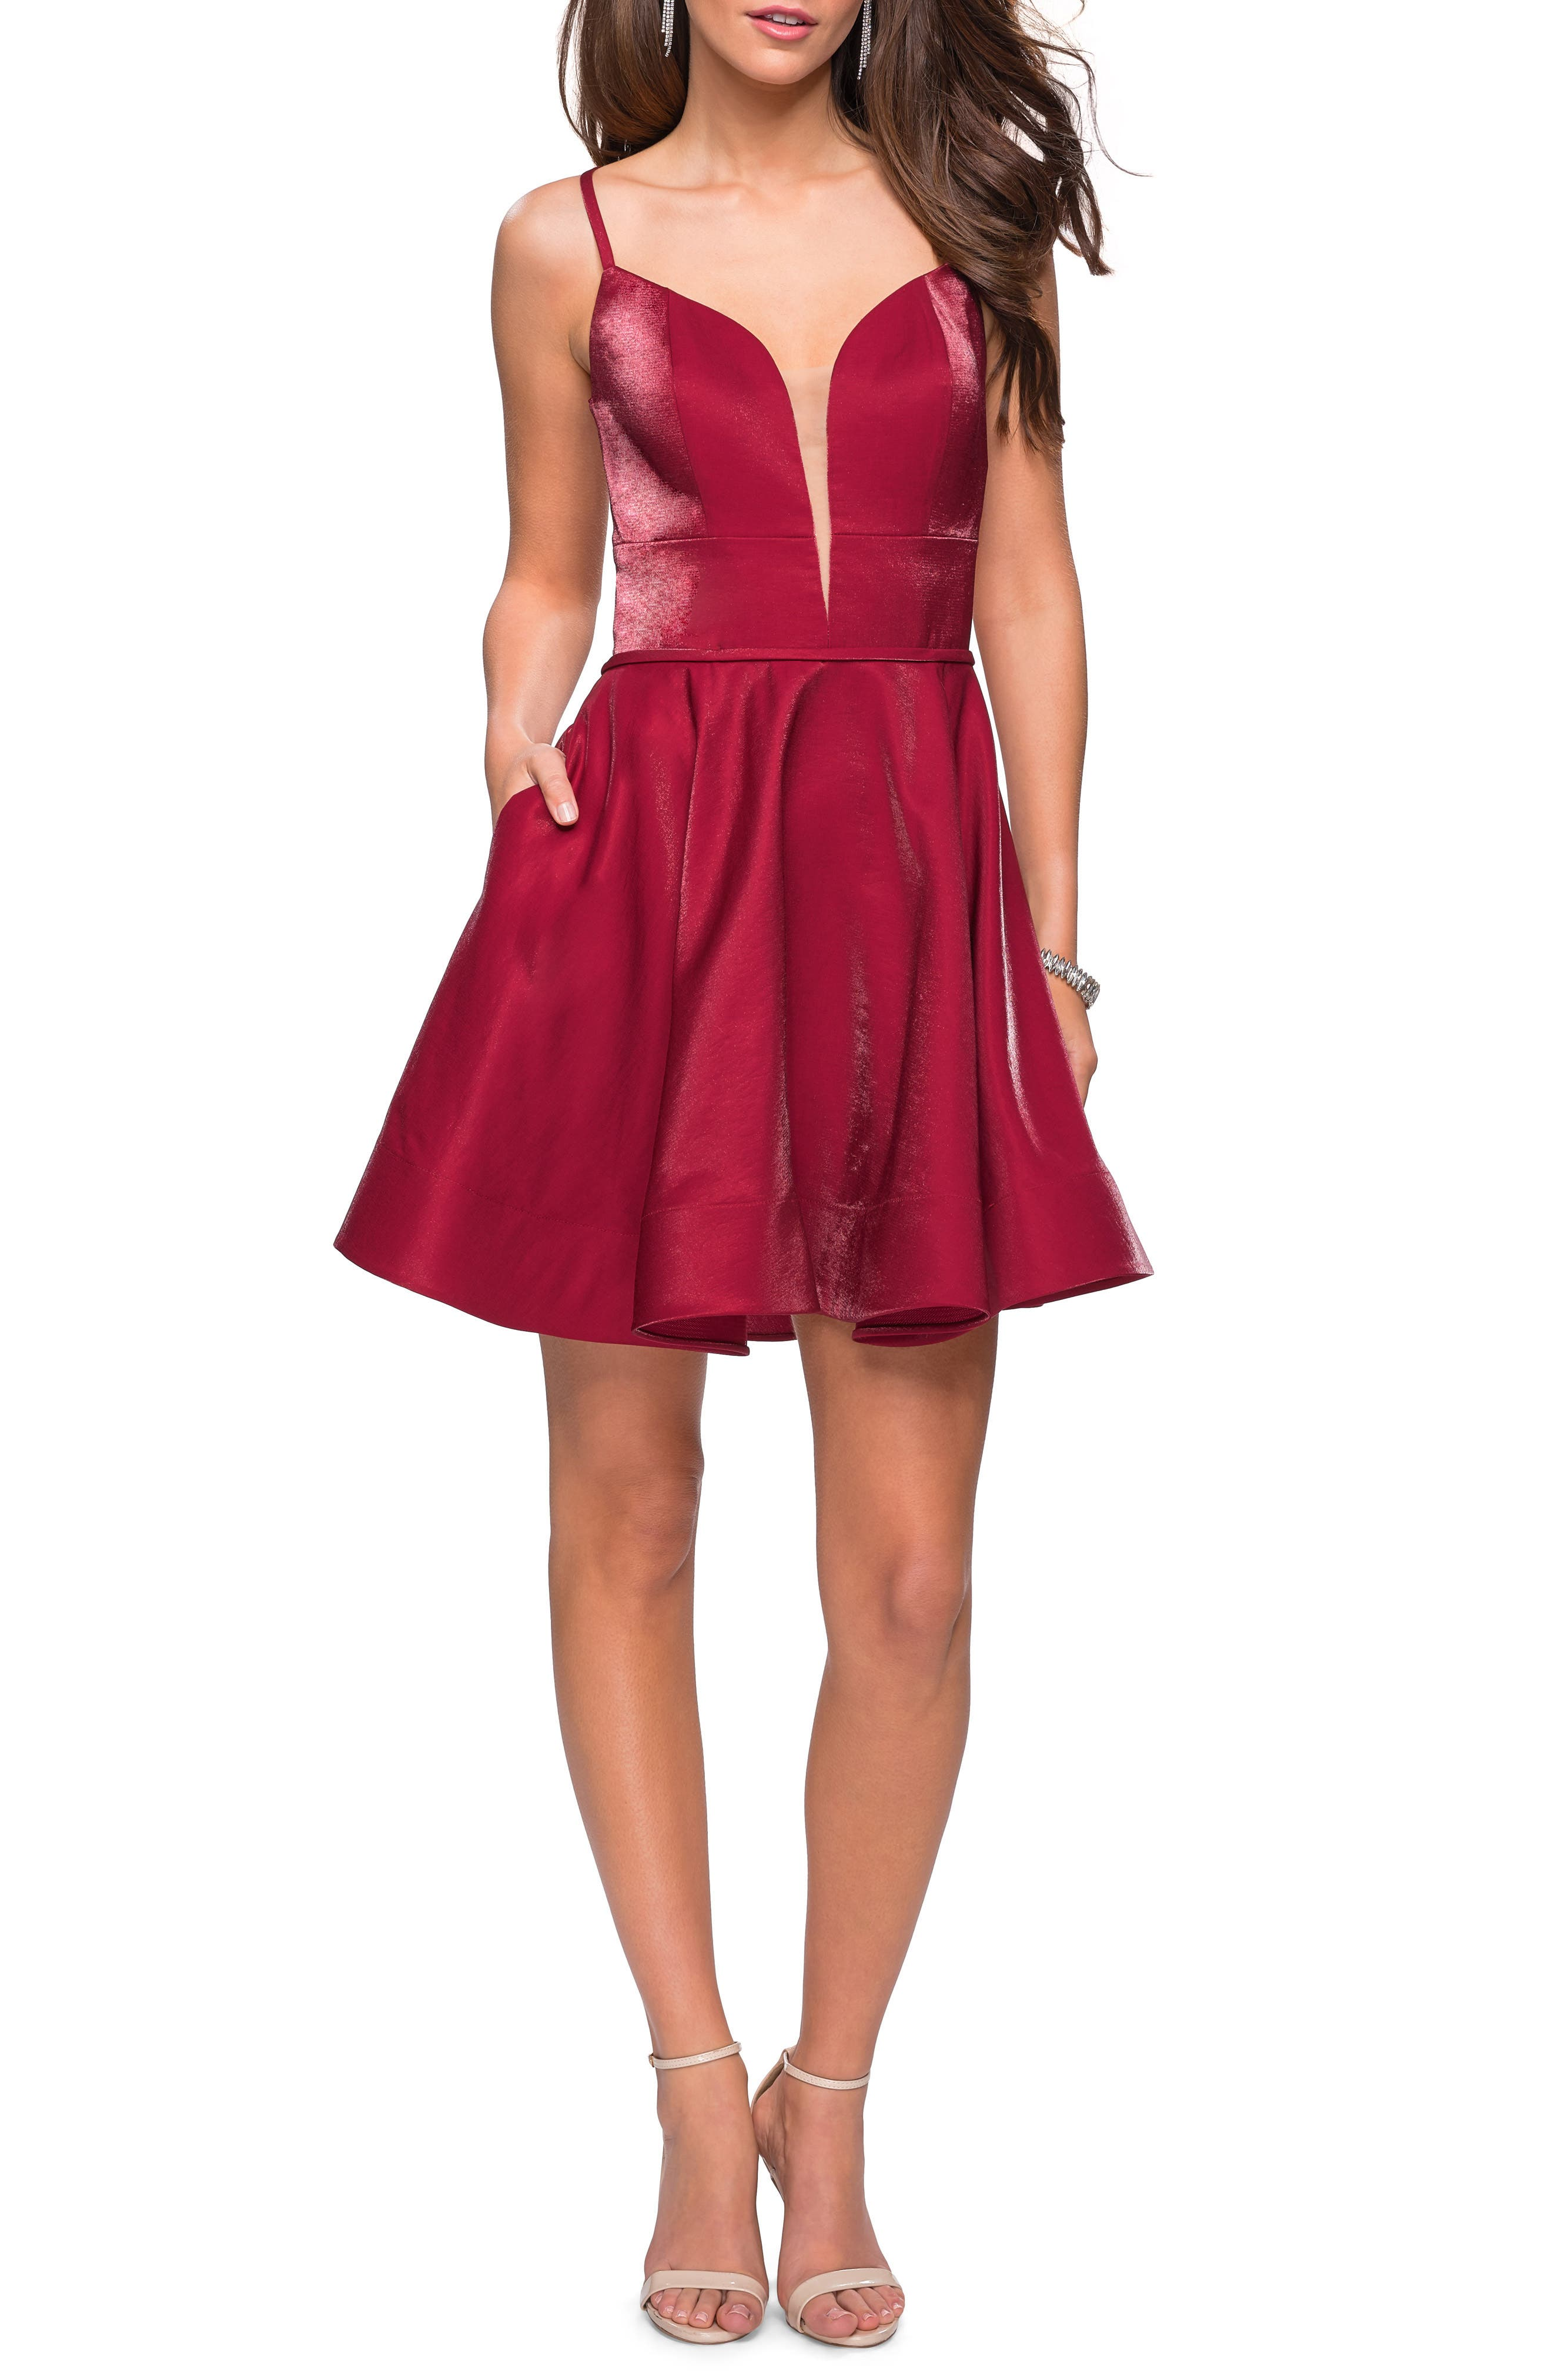 La Femme Satin Fit & Flare Dress, Red